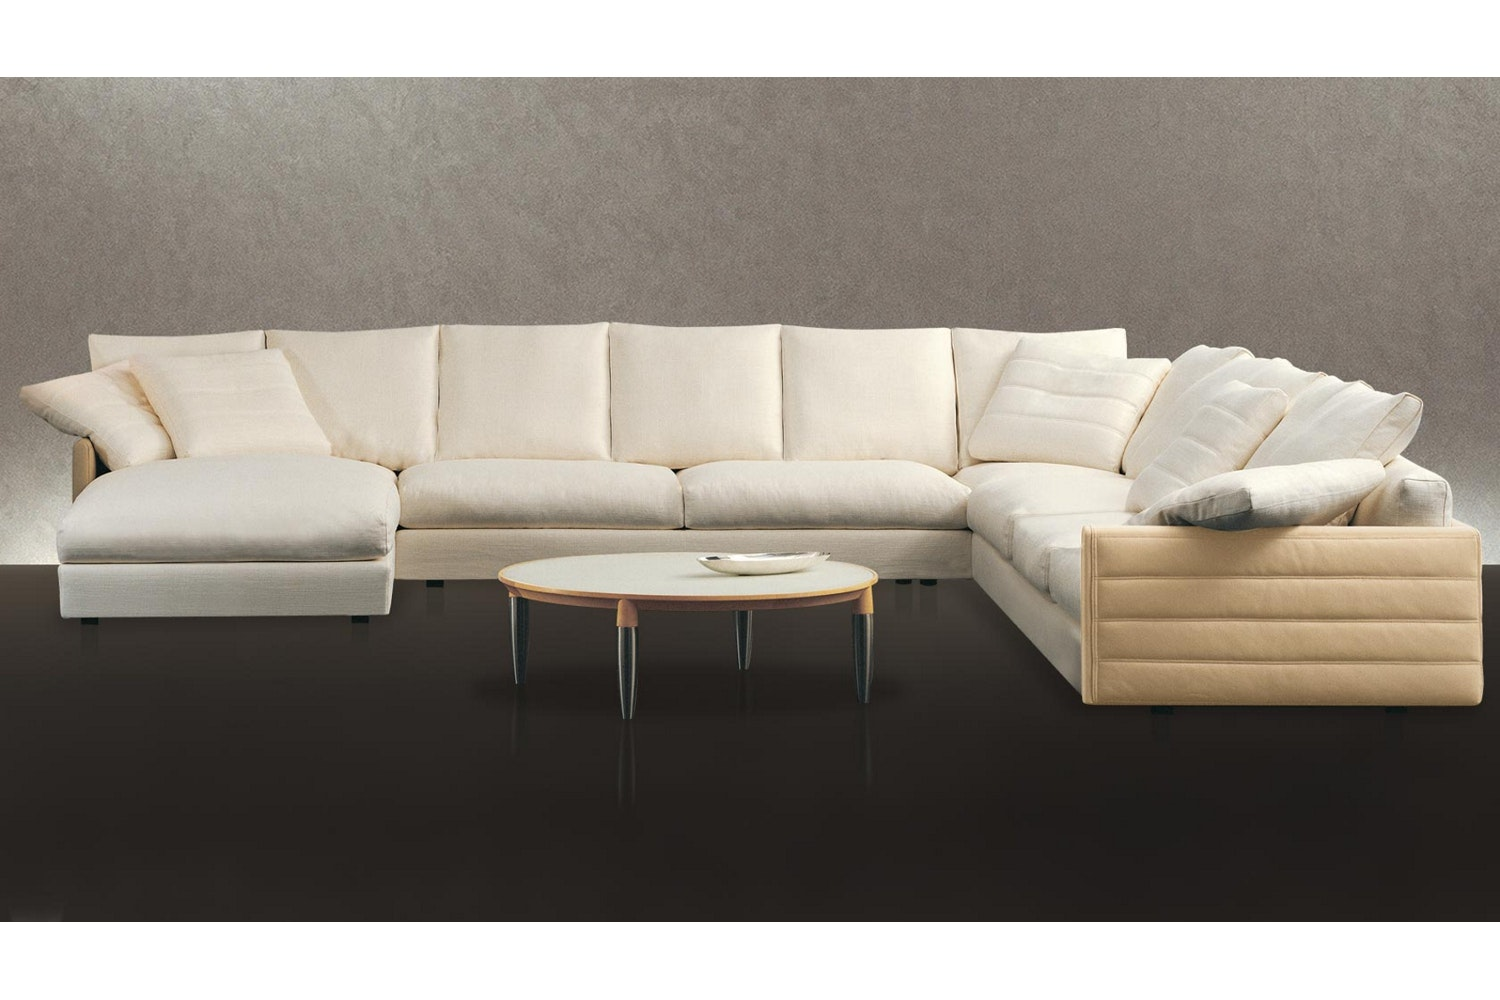 Wally Sofa by Antonello Mosca for Giorgetti